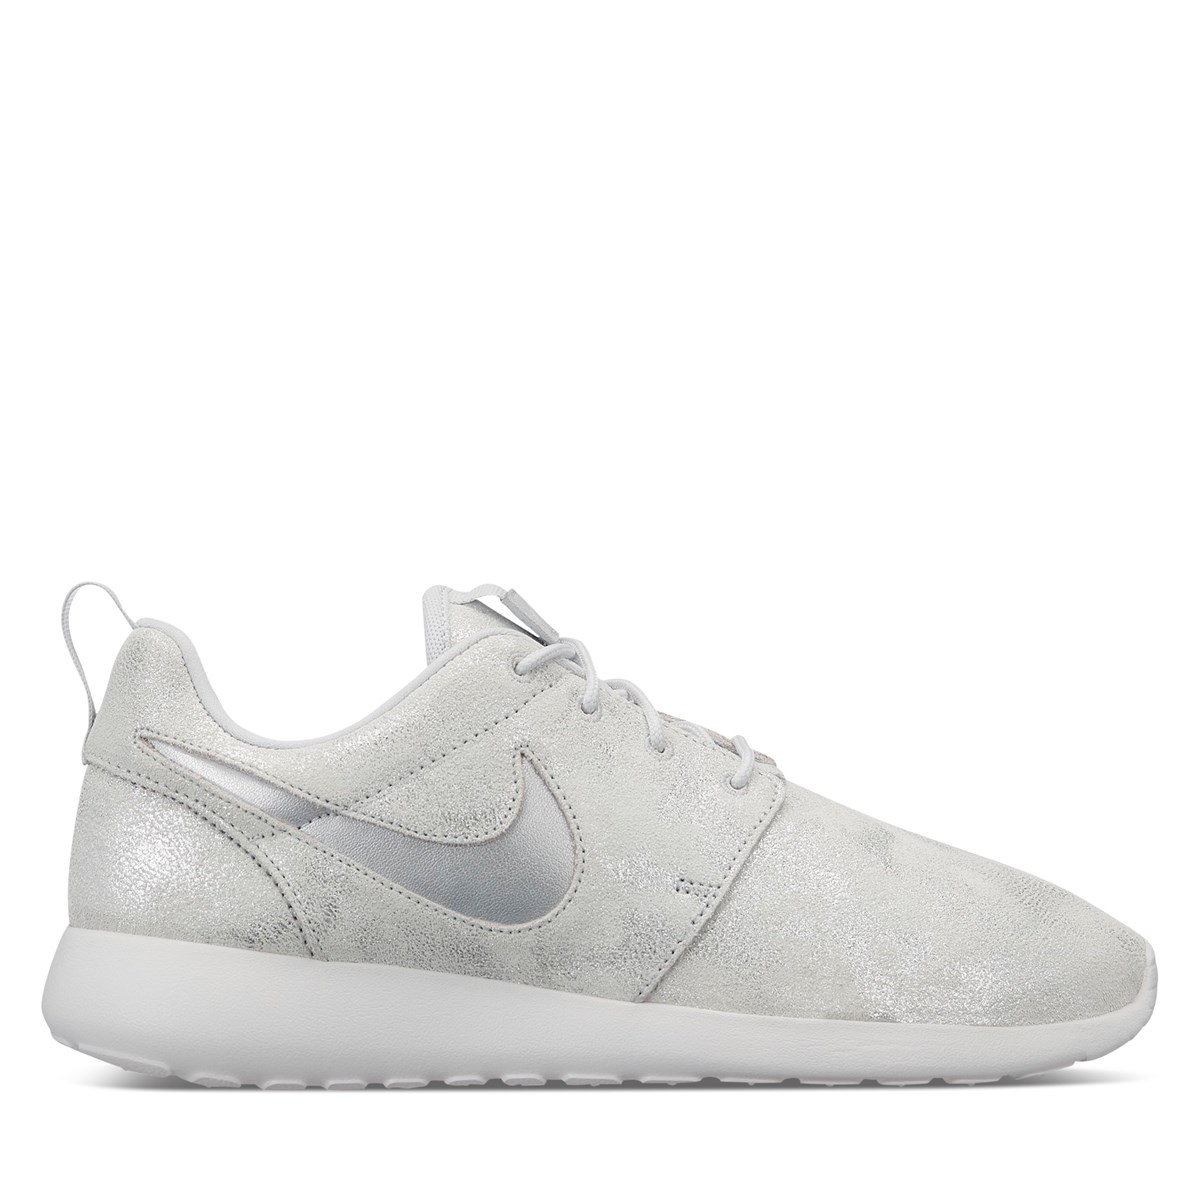 new style a516c fa35d Women's Roshe One Premium Sneakers in White